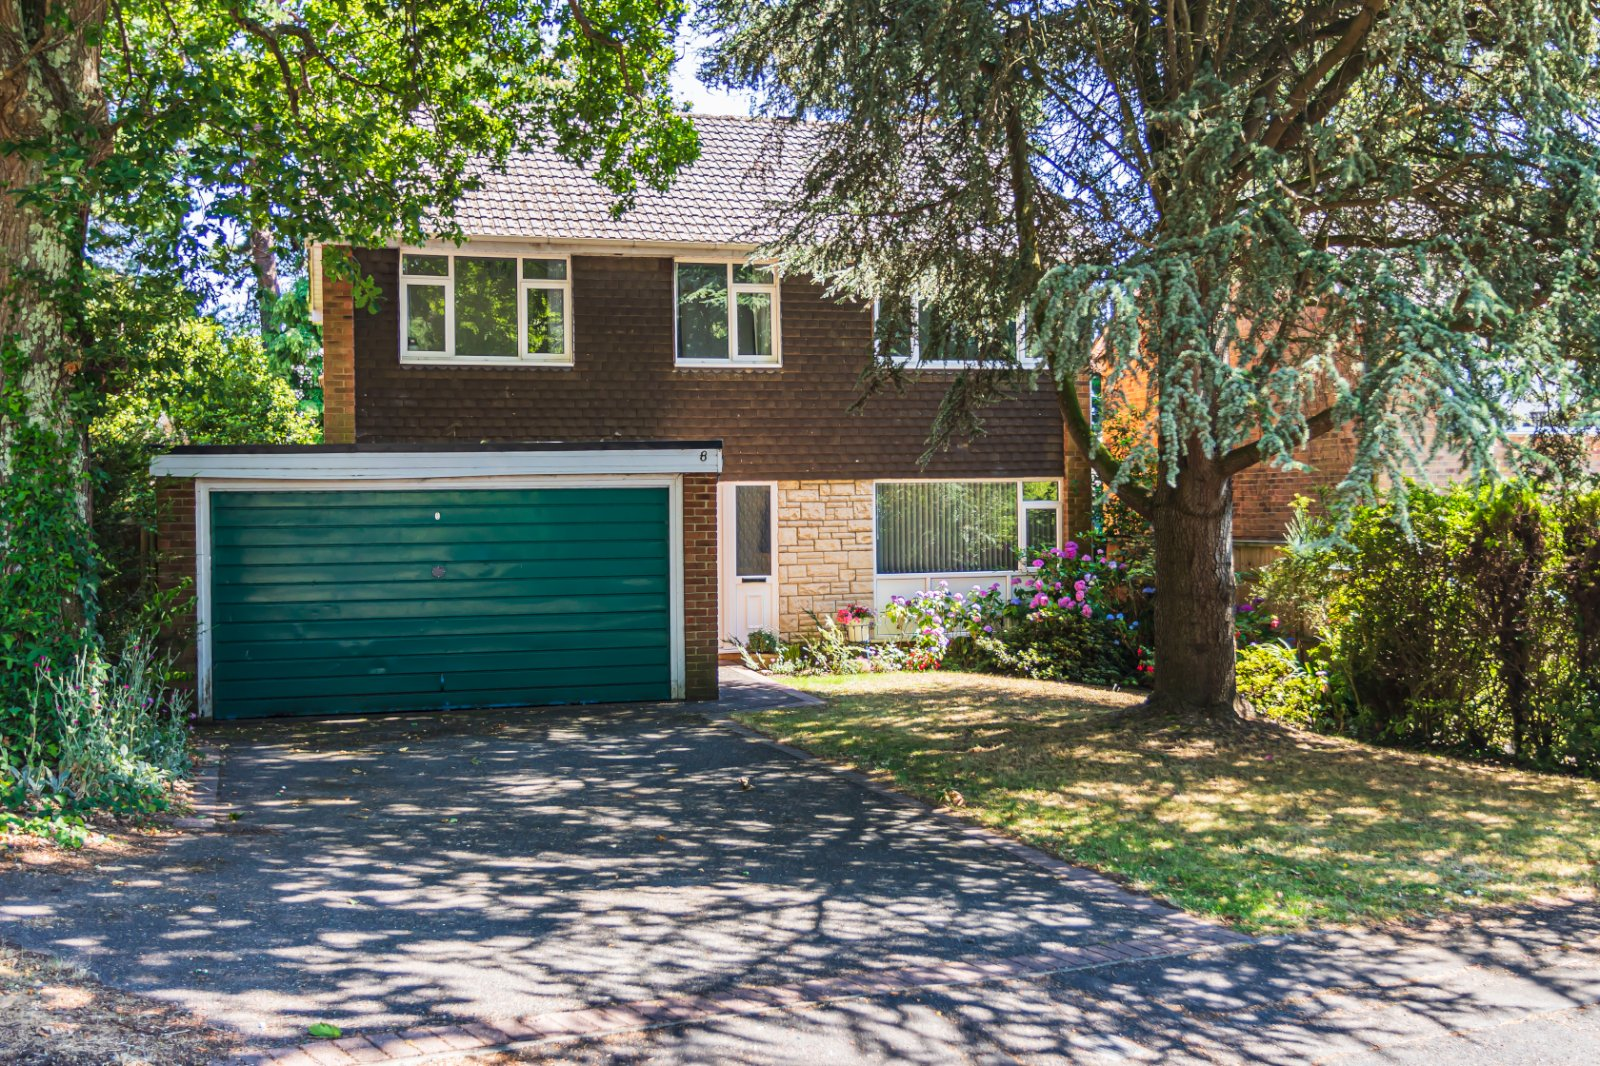 4 bed house for sale in Lower Parkstone  - Property Image 2